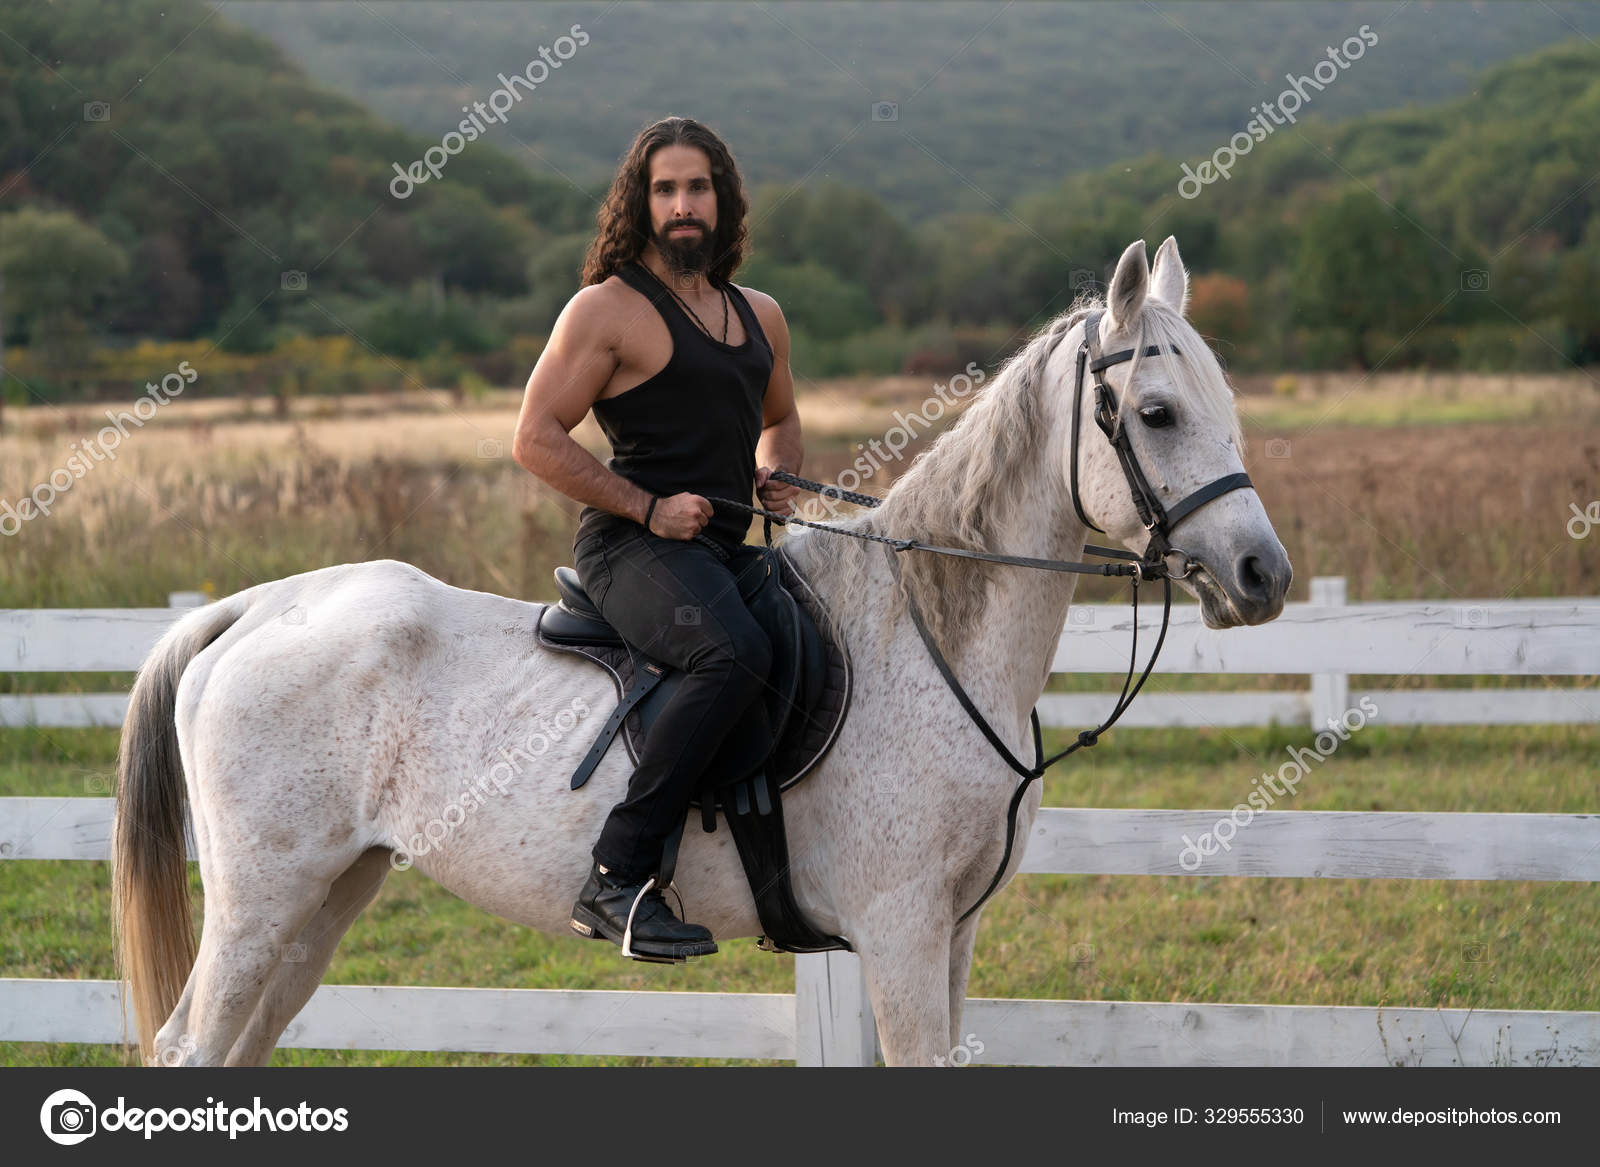 Beautiful Horse With Man Rider Trotting On Autumnal Field Equestrian And Animal Love Concept Rider On